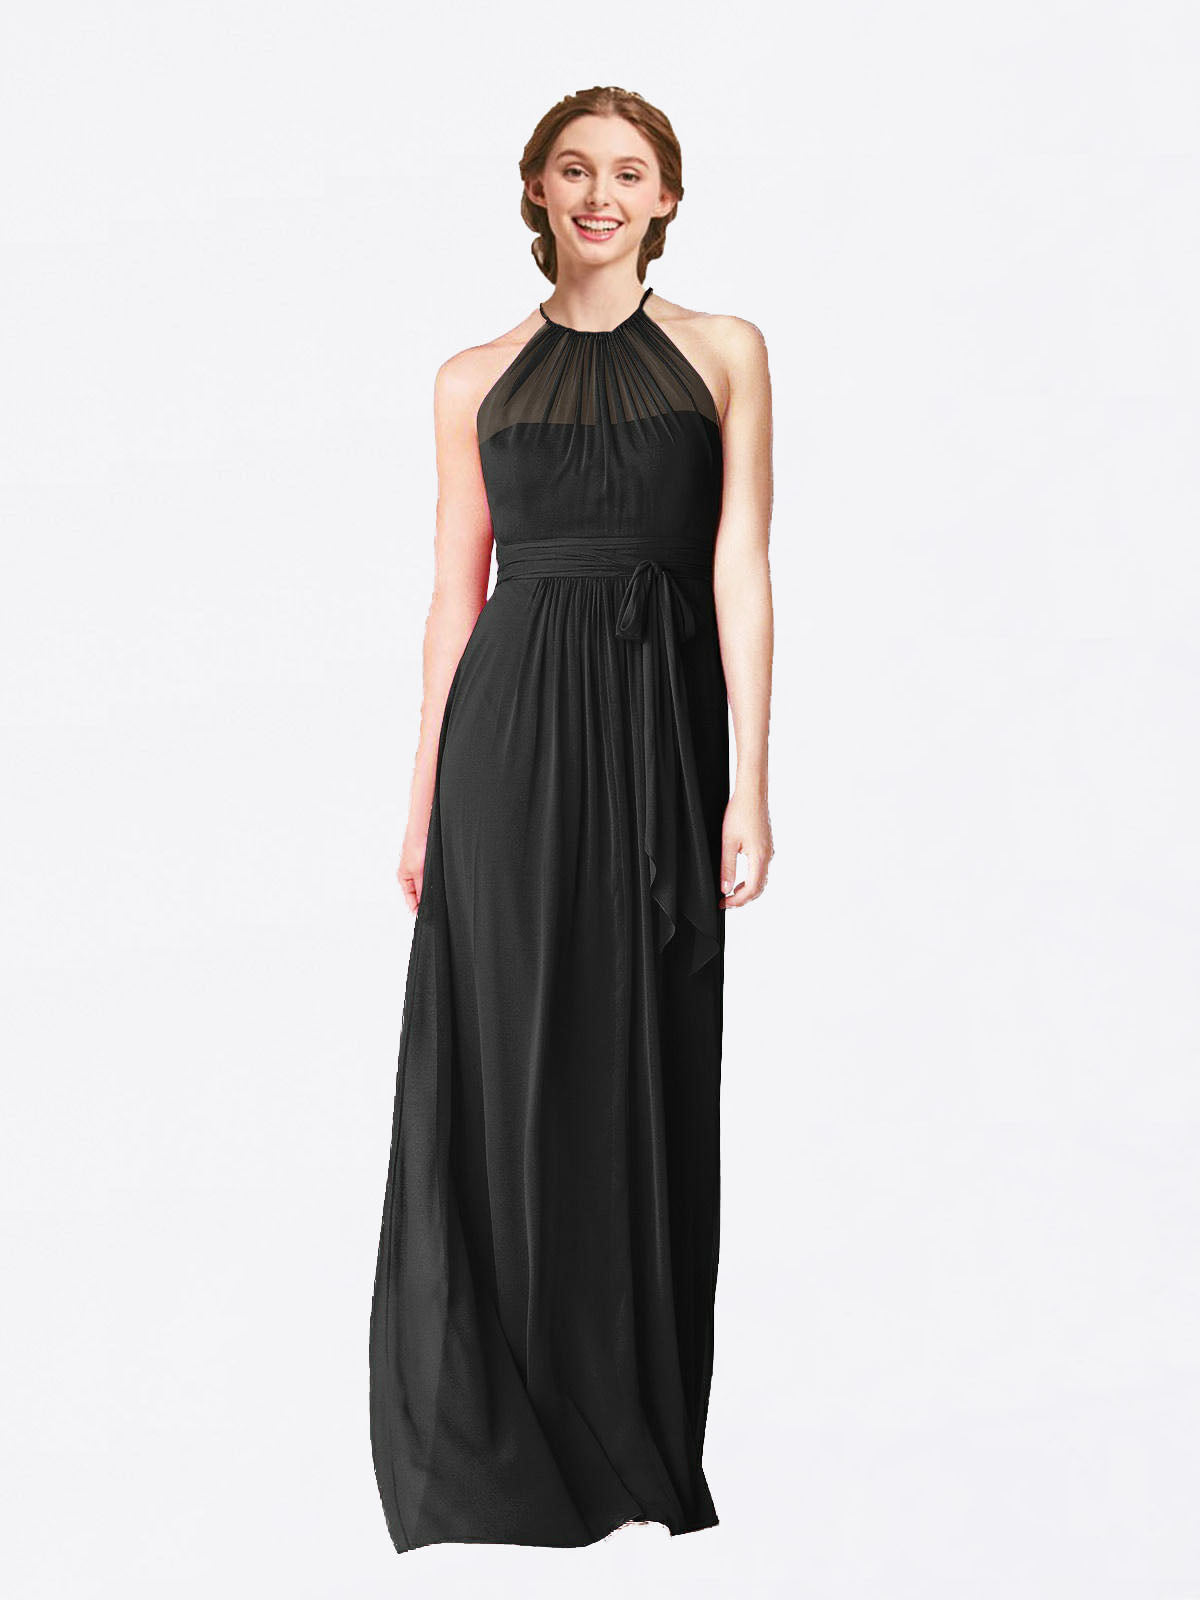 Long A-Line Halter Sleeveless Black Chiffon Bridesmaid Dress Laura